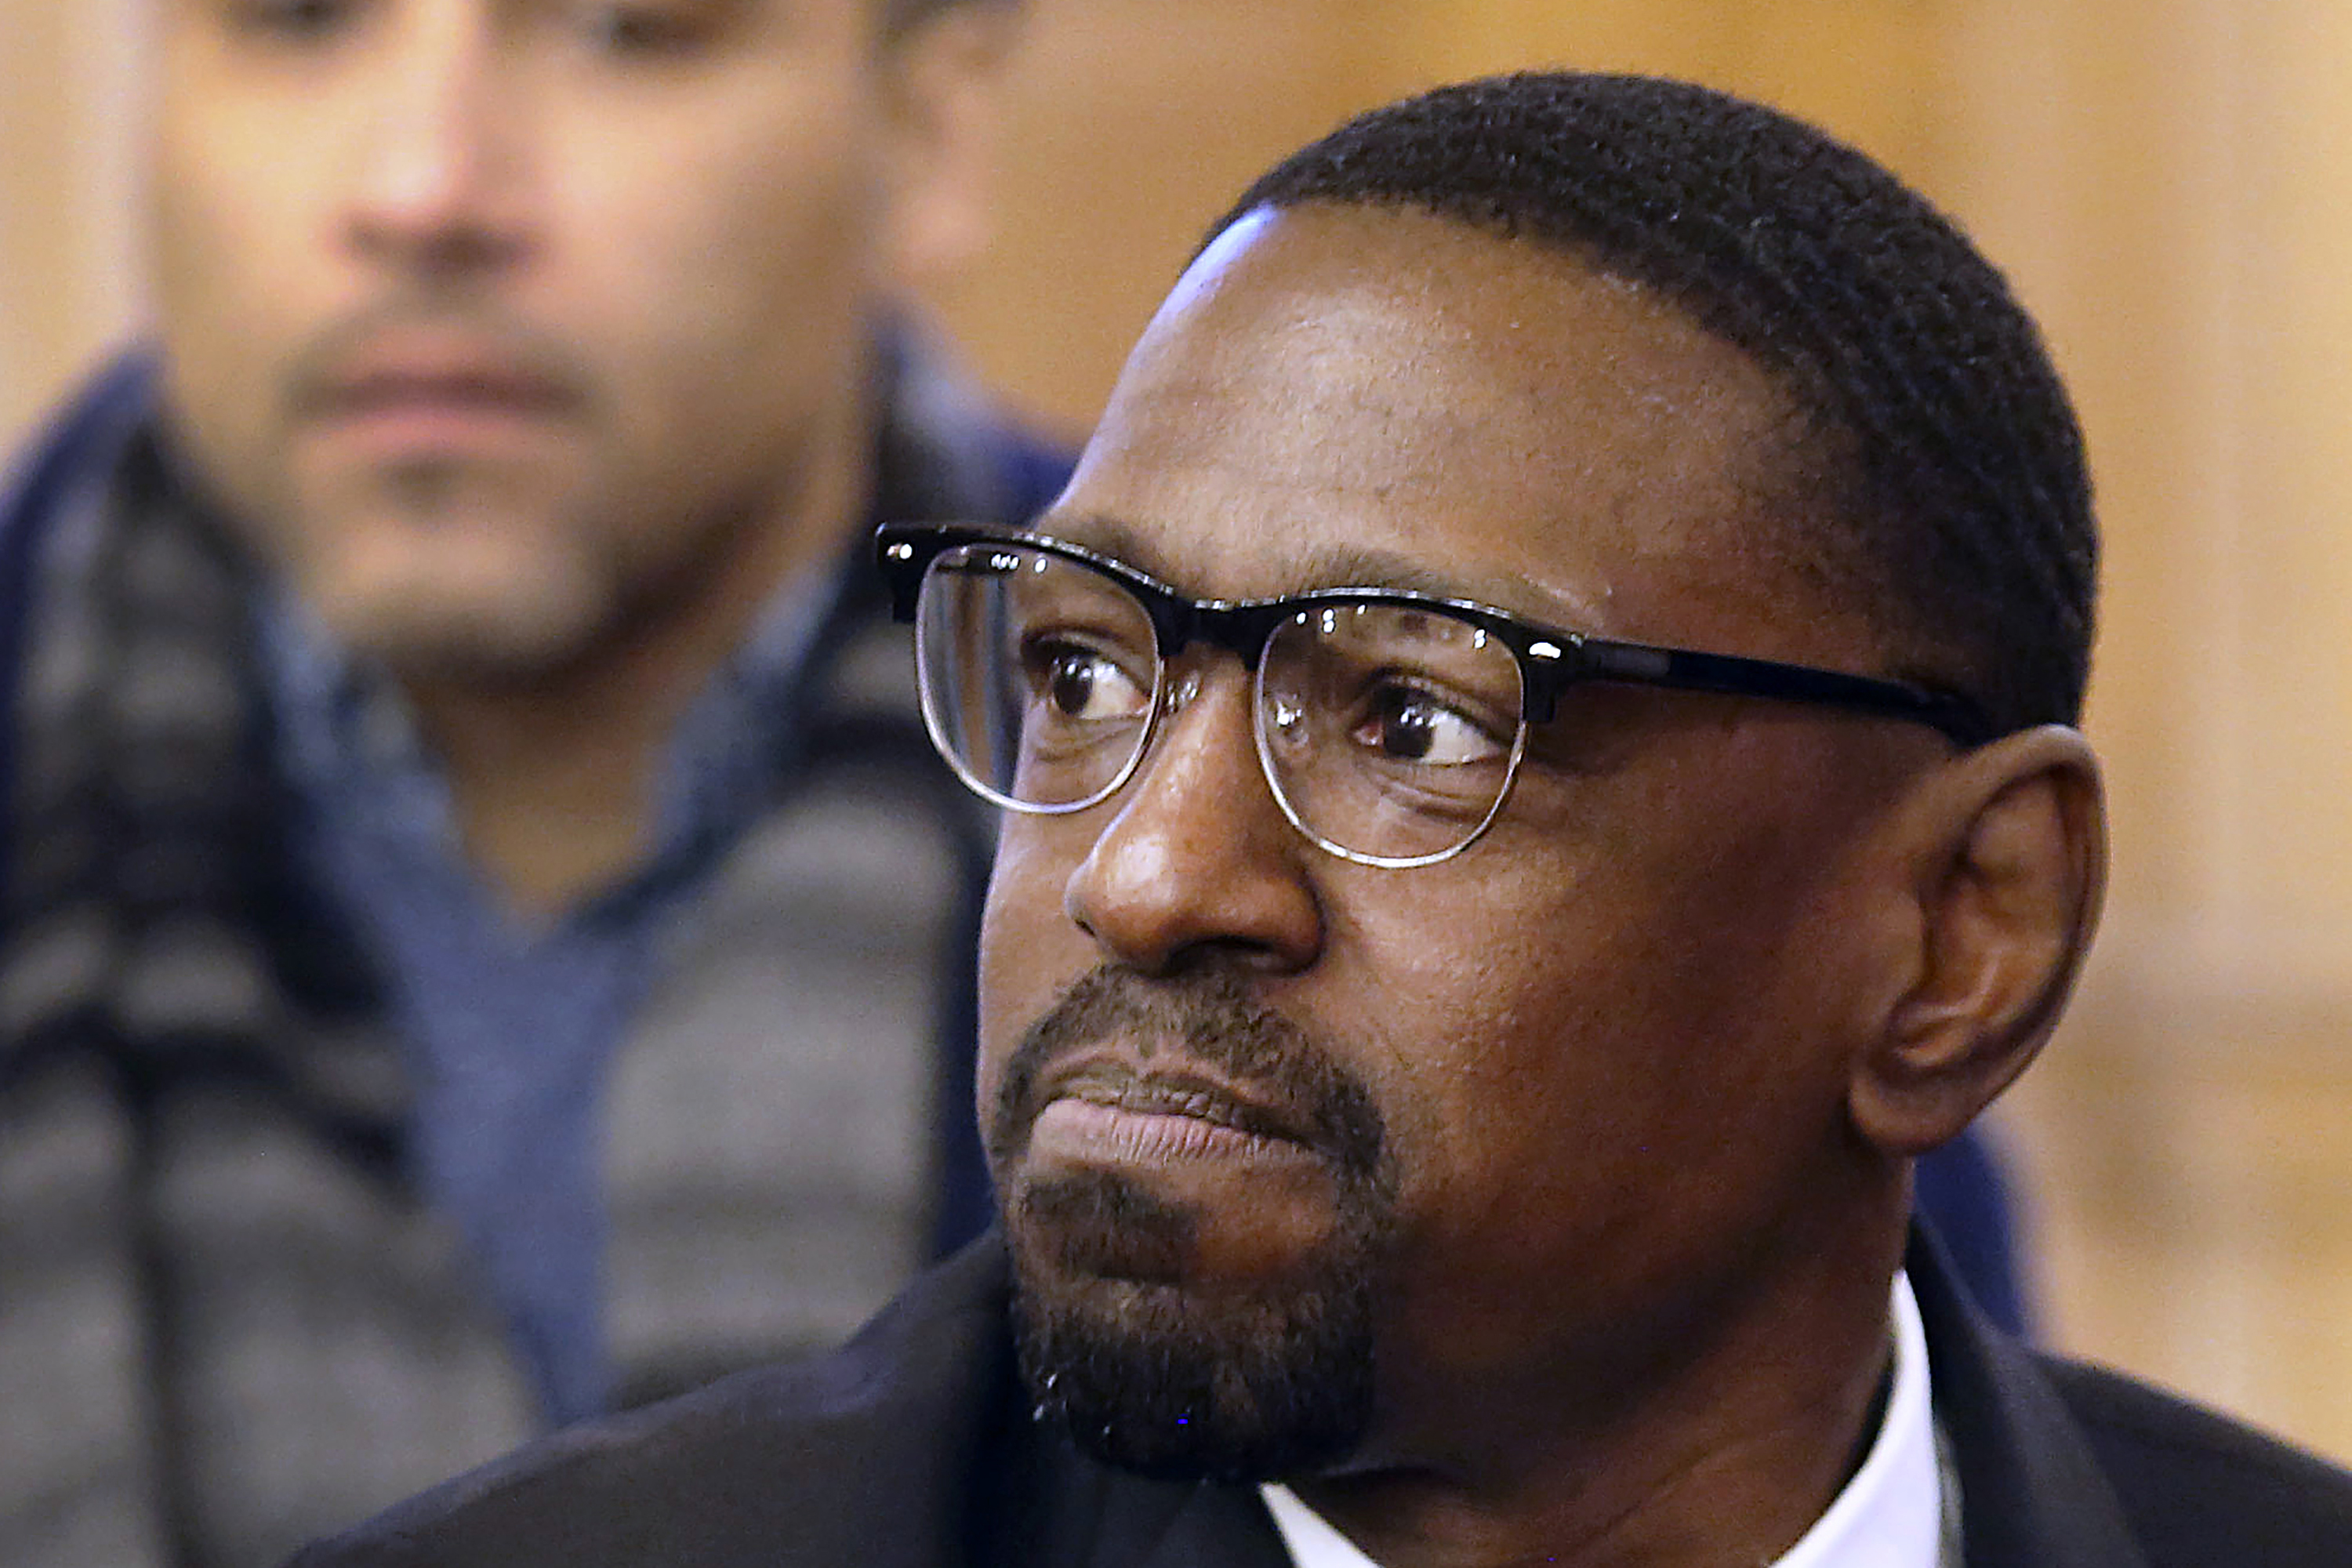 FILE - In this Feb. 14, 2018 file photo, Lamonte McIntyre, convicted of a 1994 double homicide in Kansas City, Kan., sits before the Senate Judiciary Committee in Topika Kan. McIntyre, who spent 23 years in prison for a double murder he did not commit was granted more than $1.5 million in compensation under the state's mistaken-conviction statute.